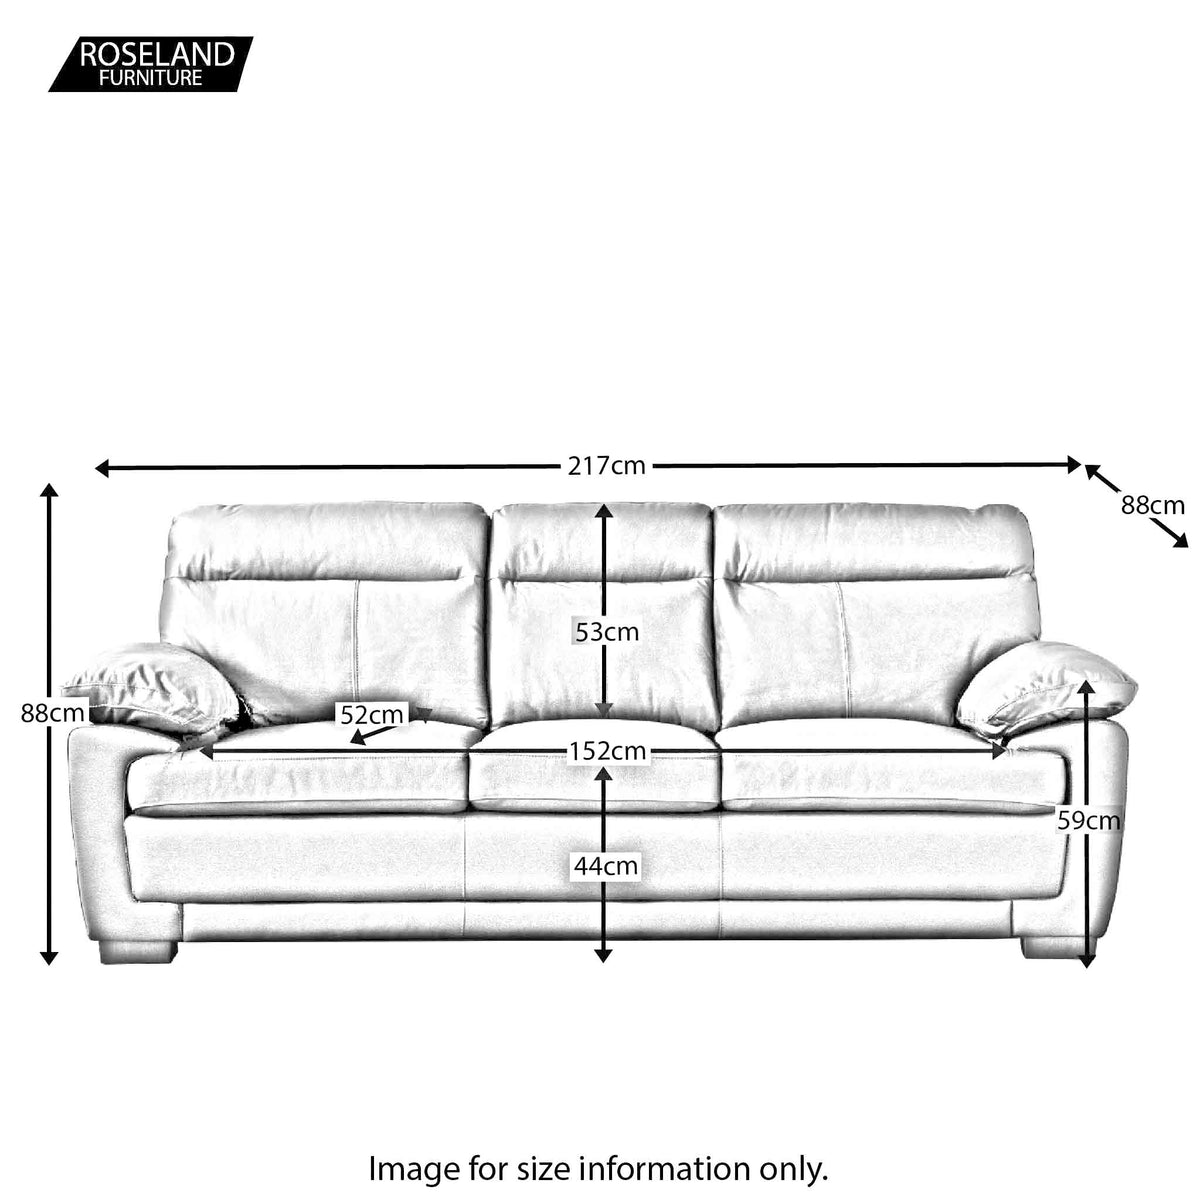 Hugo 3 Seater Leather Sofa - Size Guide